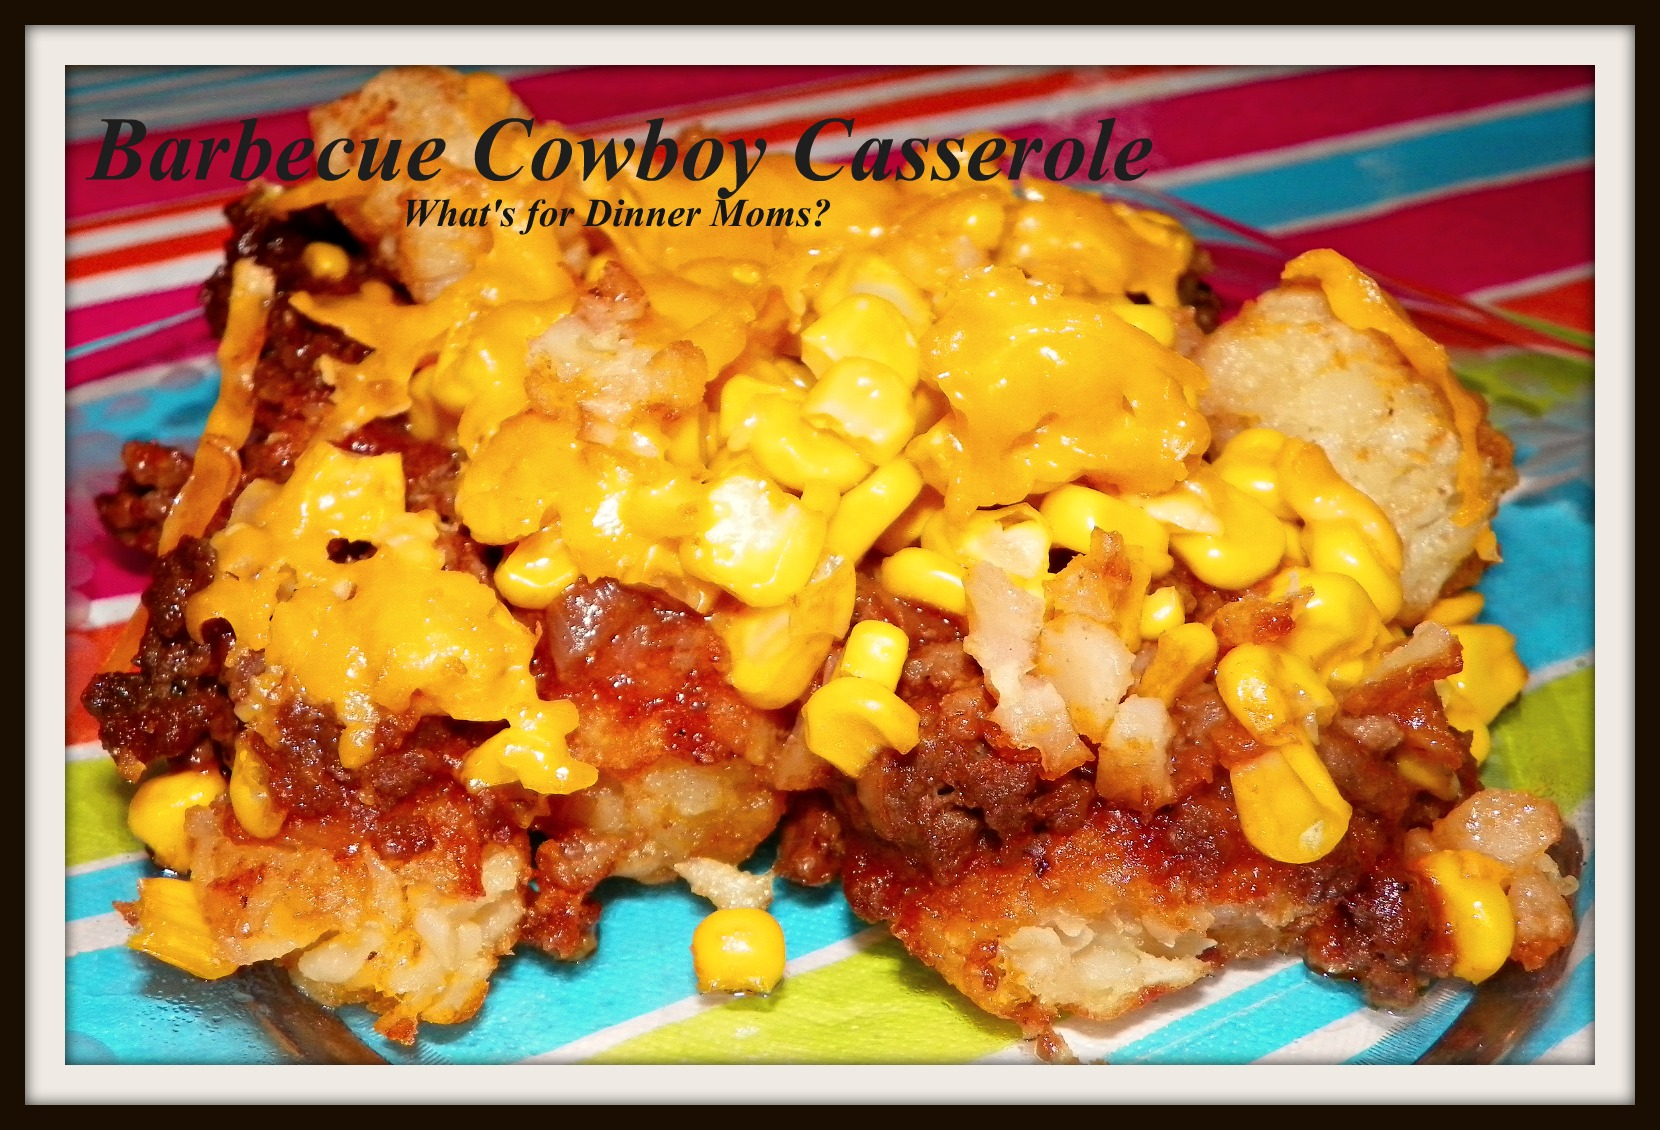 Barbecue Cowboy Casserole | What's for Dinner Moms?